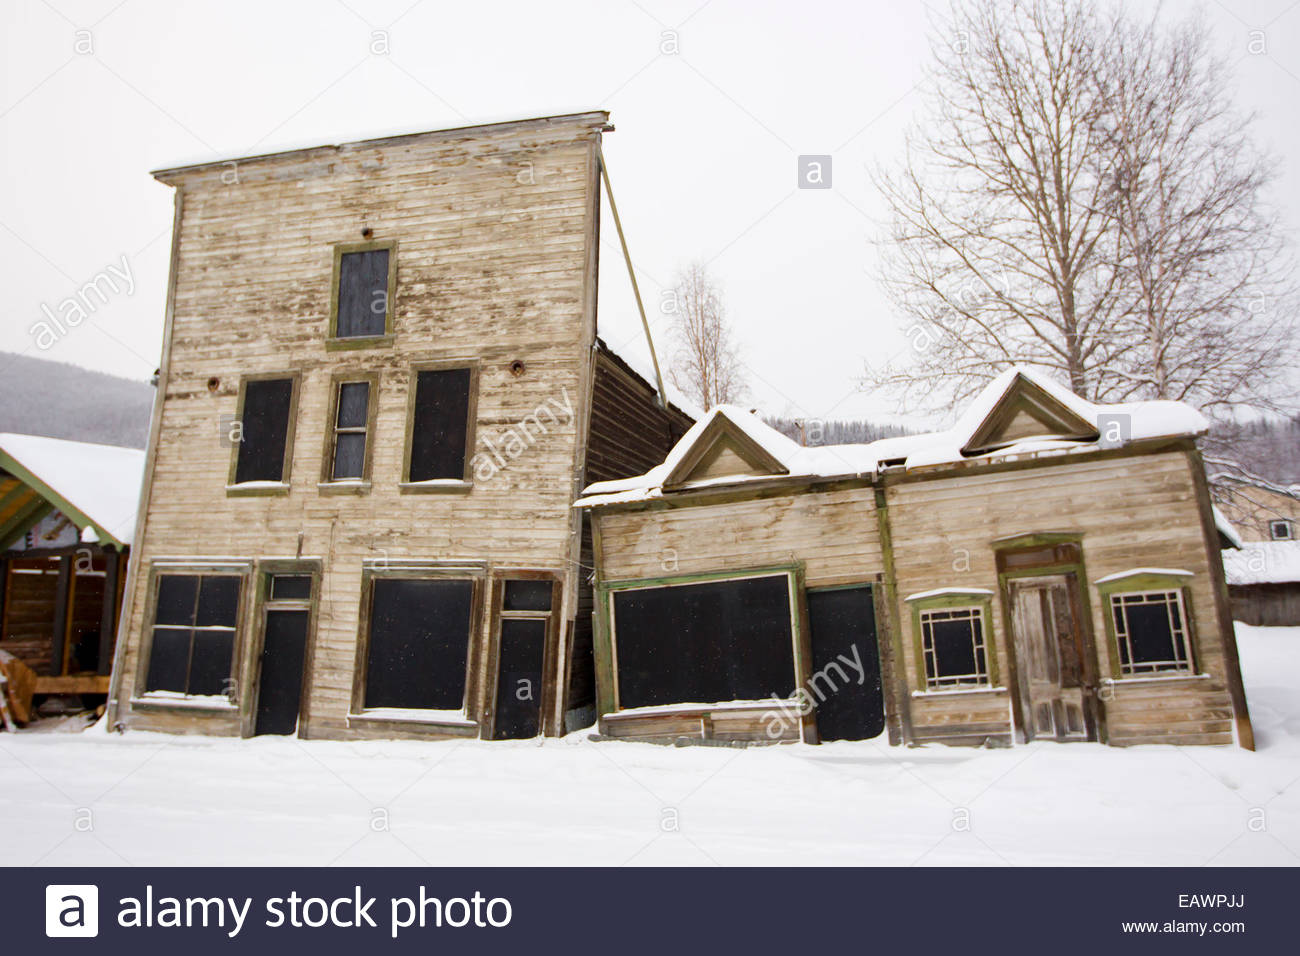 The Historic 3rd Avenue Complex buildings dated 1901 in Dawson City, Canada. - Stock Image